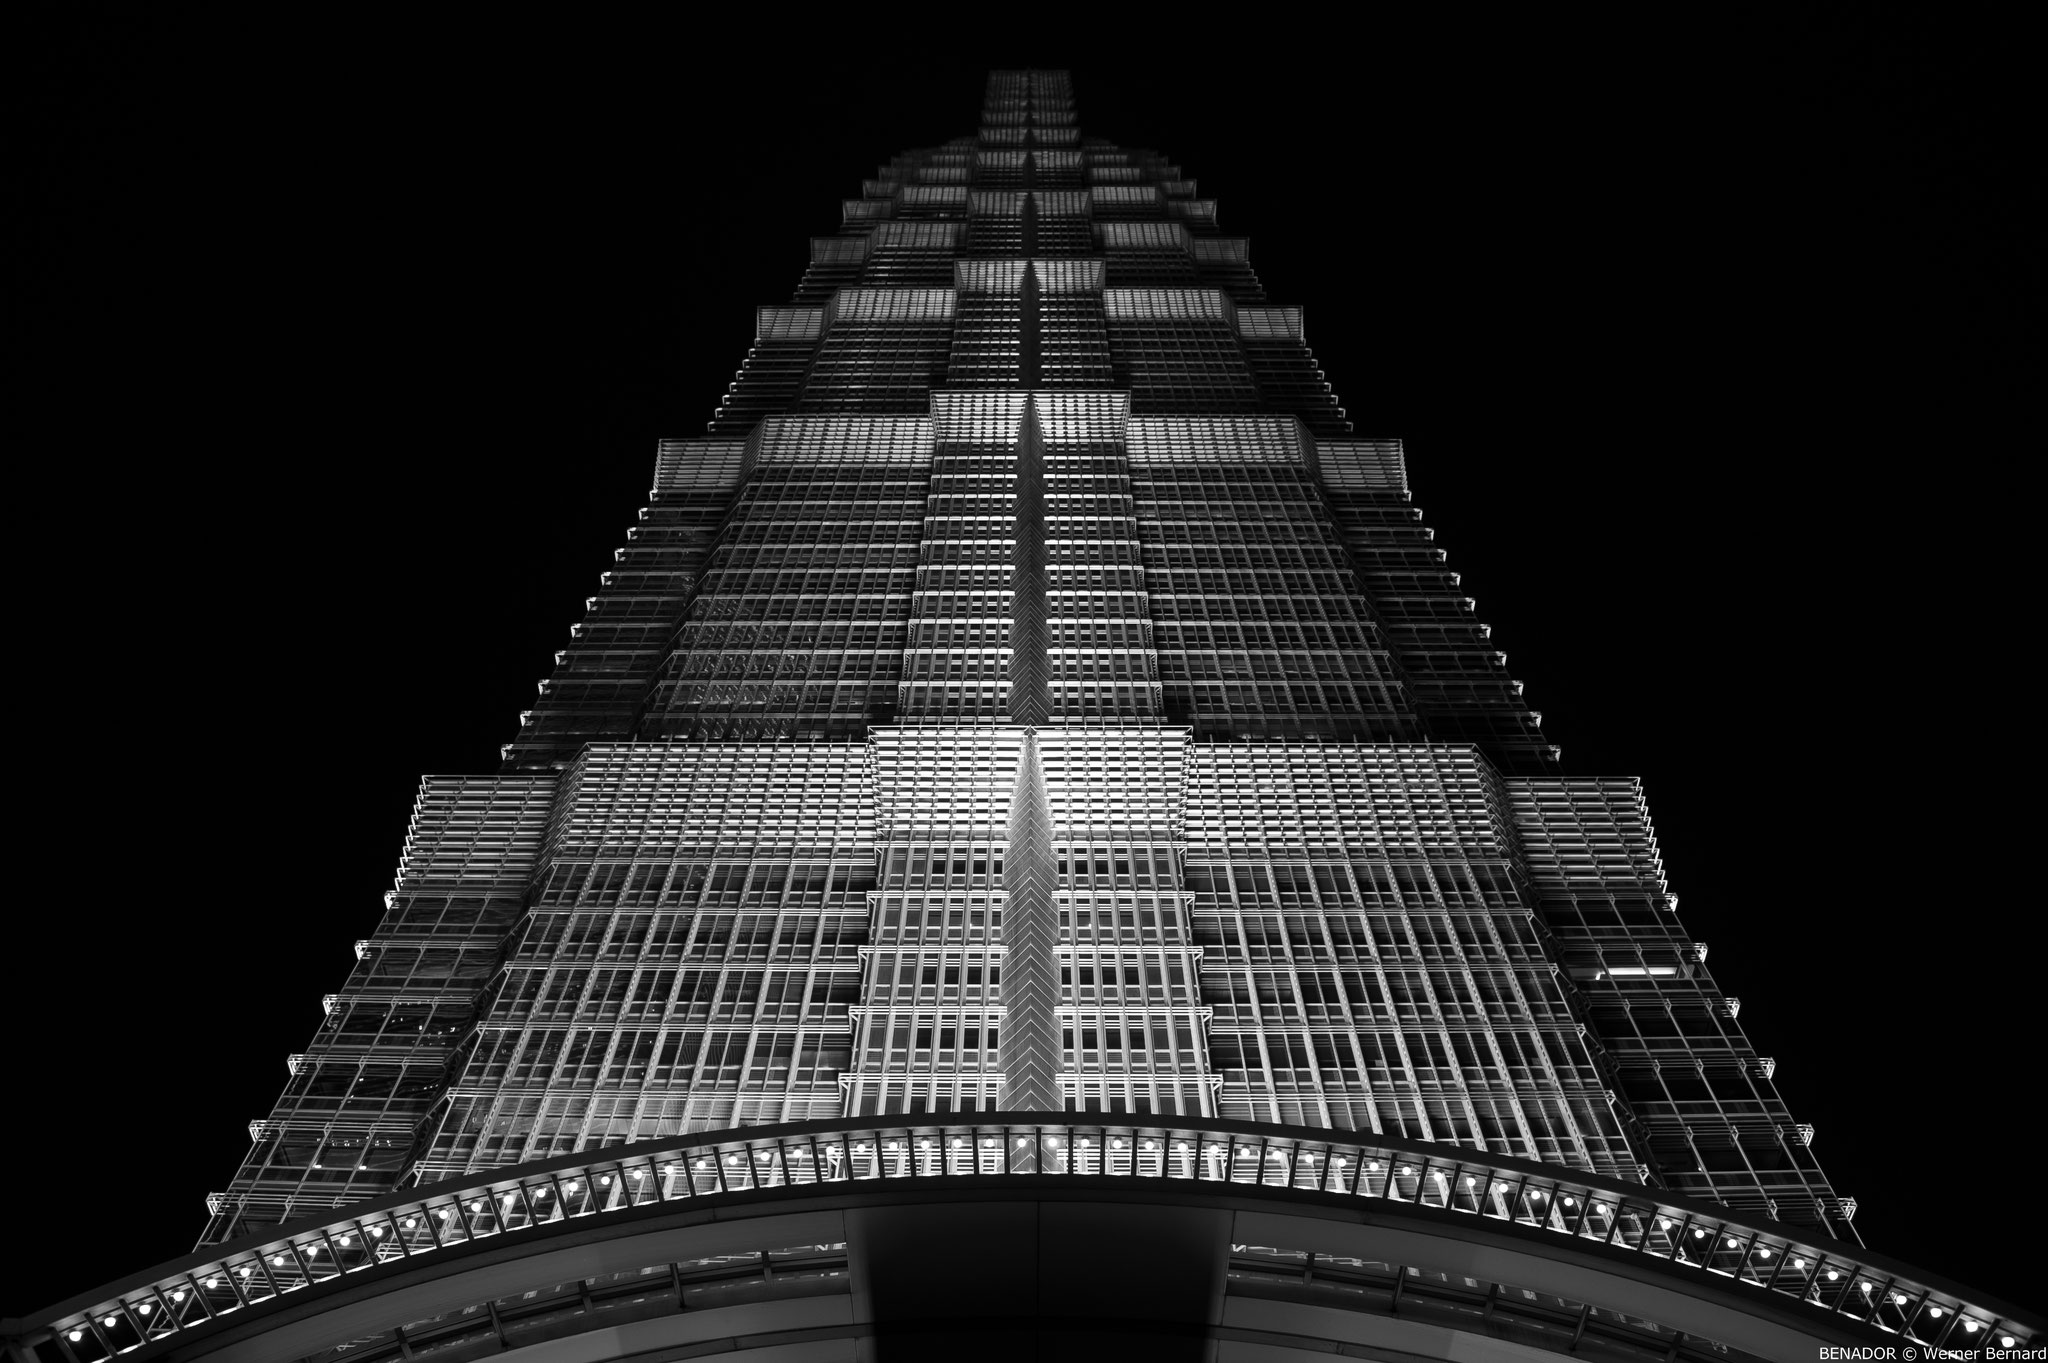 Jin Mao Tower 2010